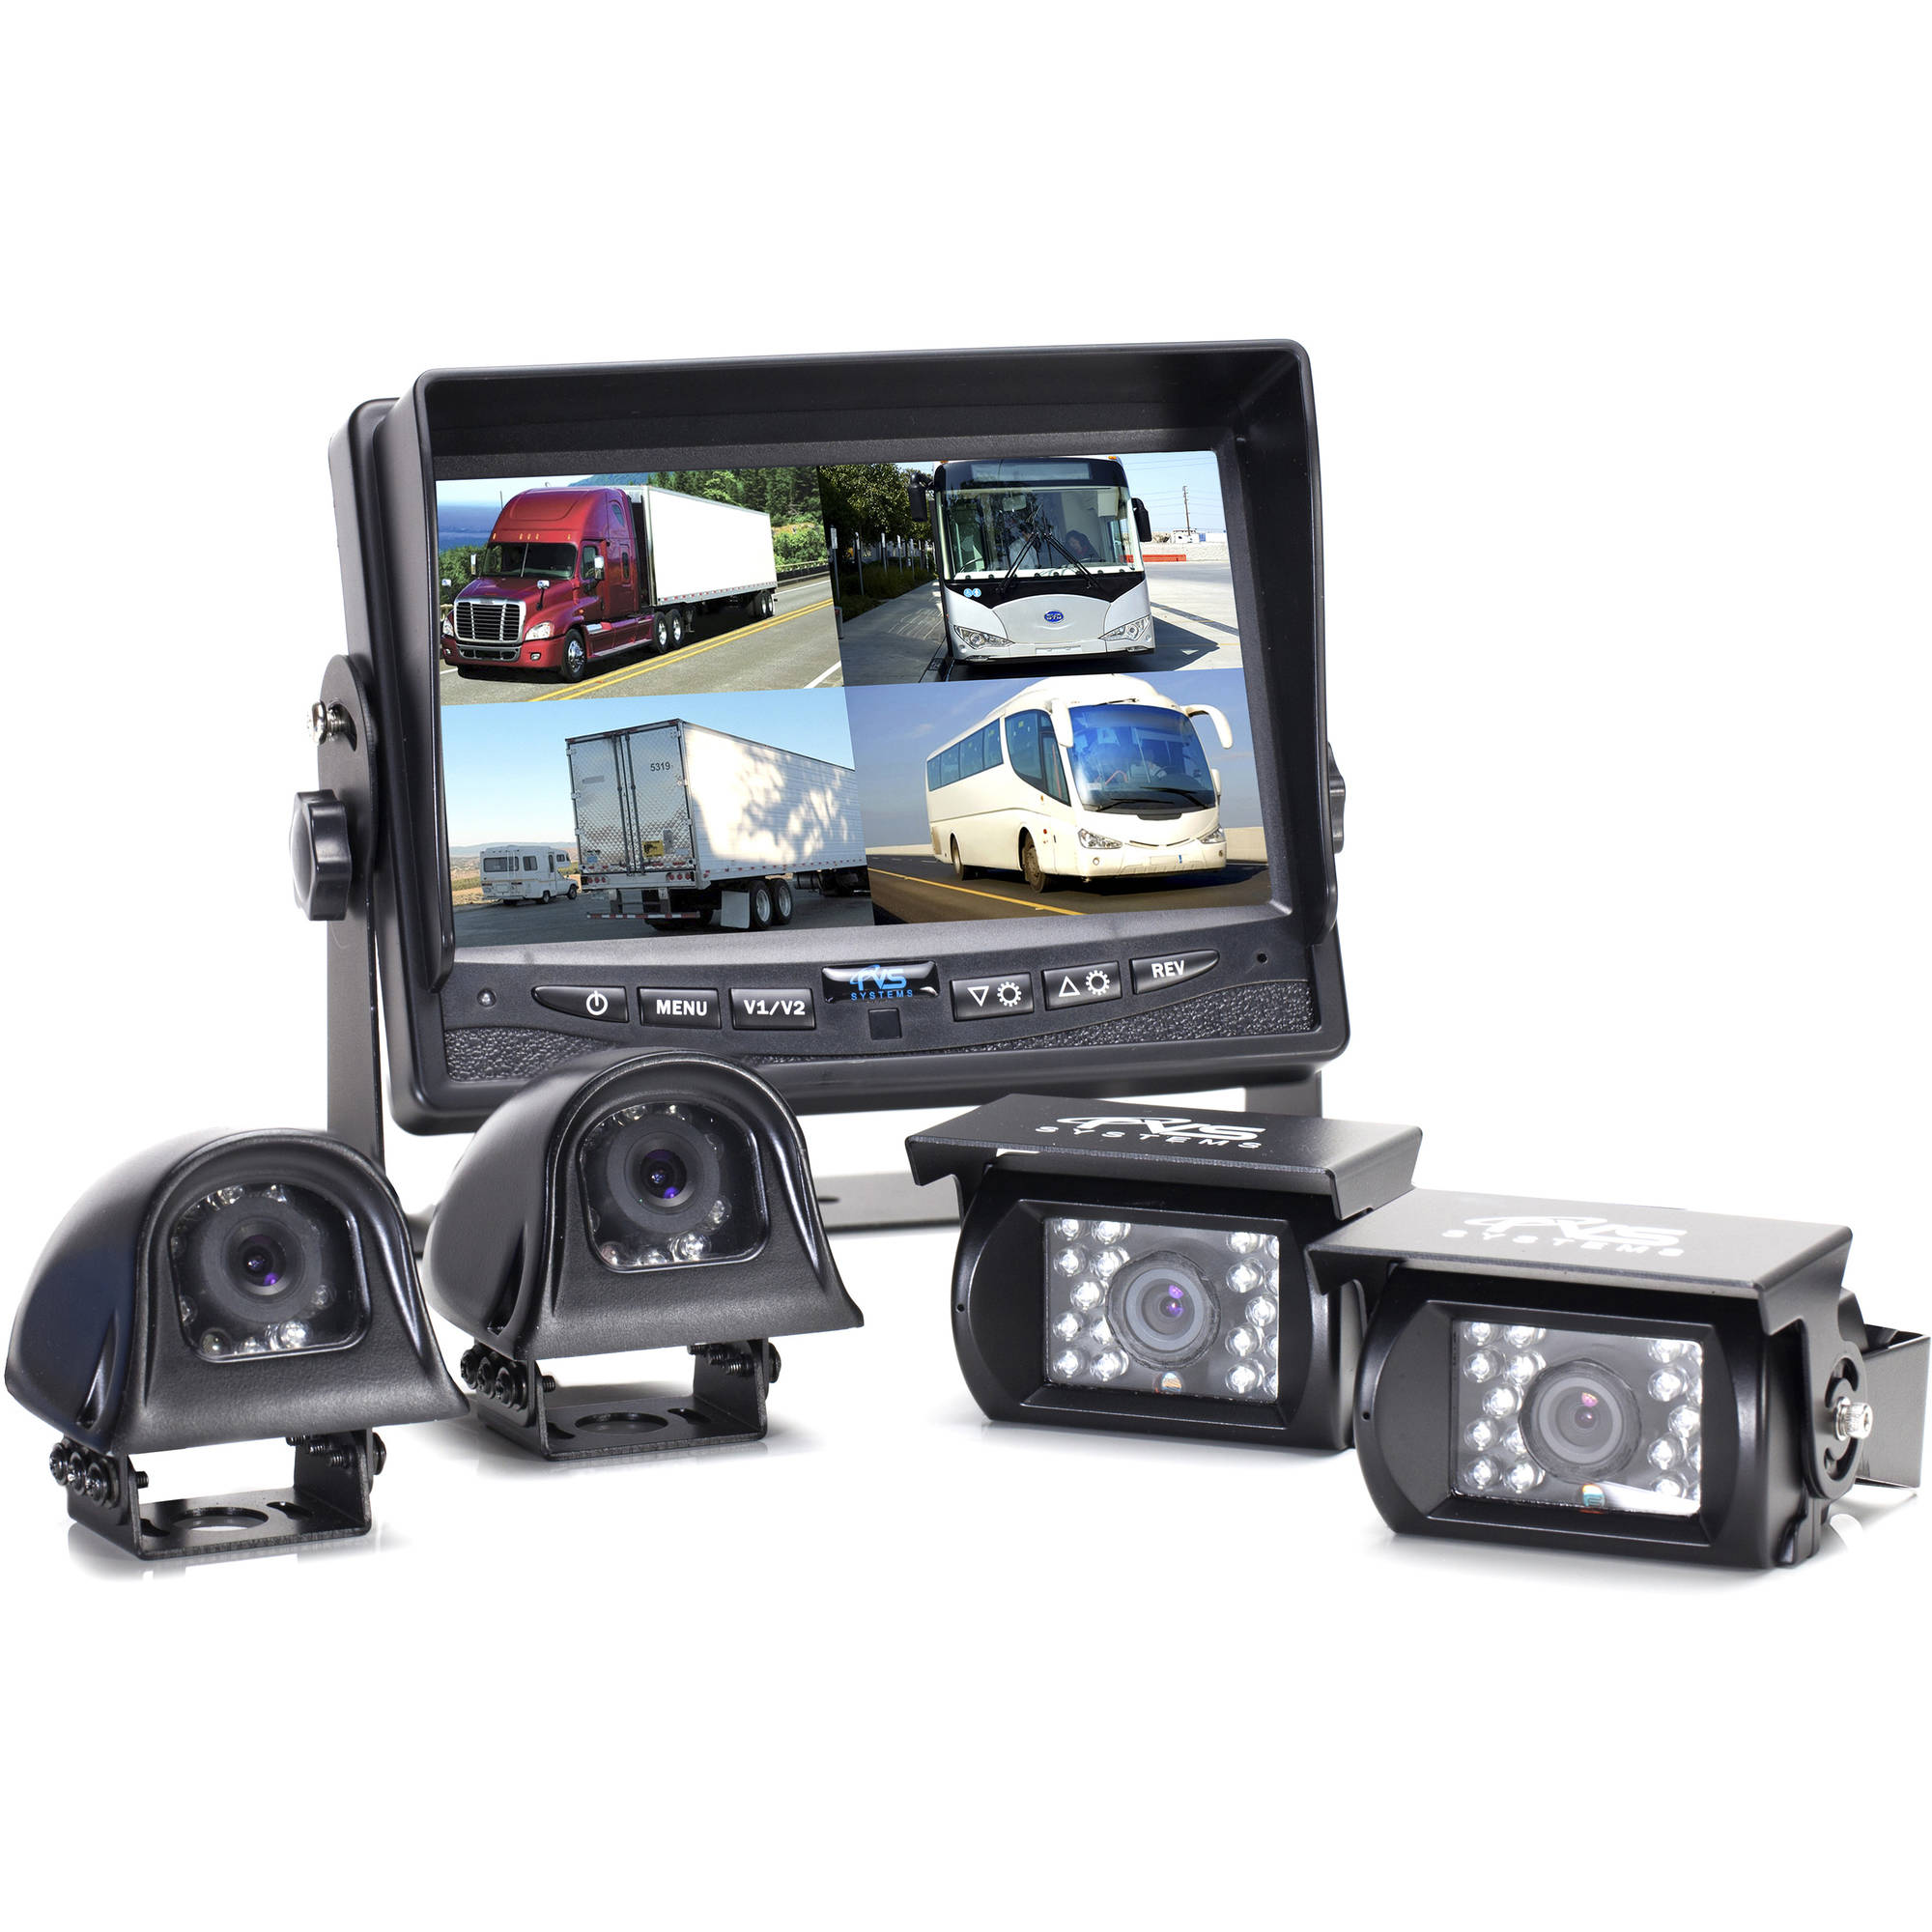 Rear View Camera System, 4 Camera Setup